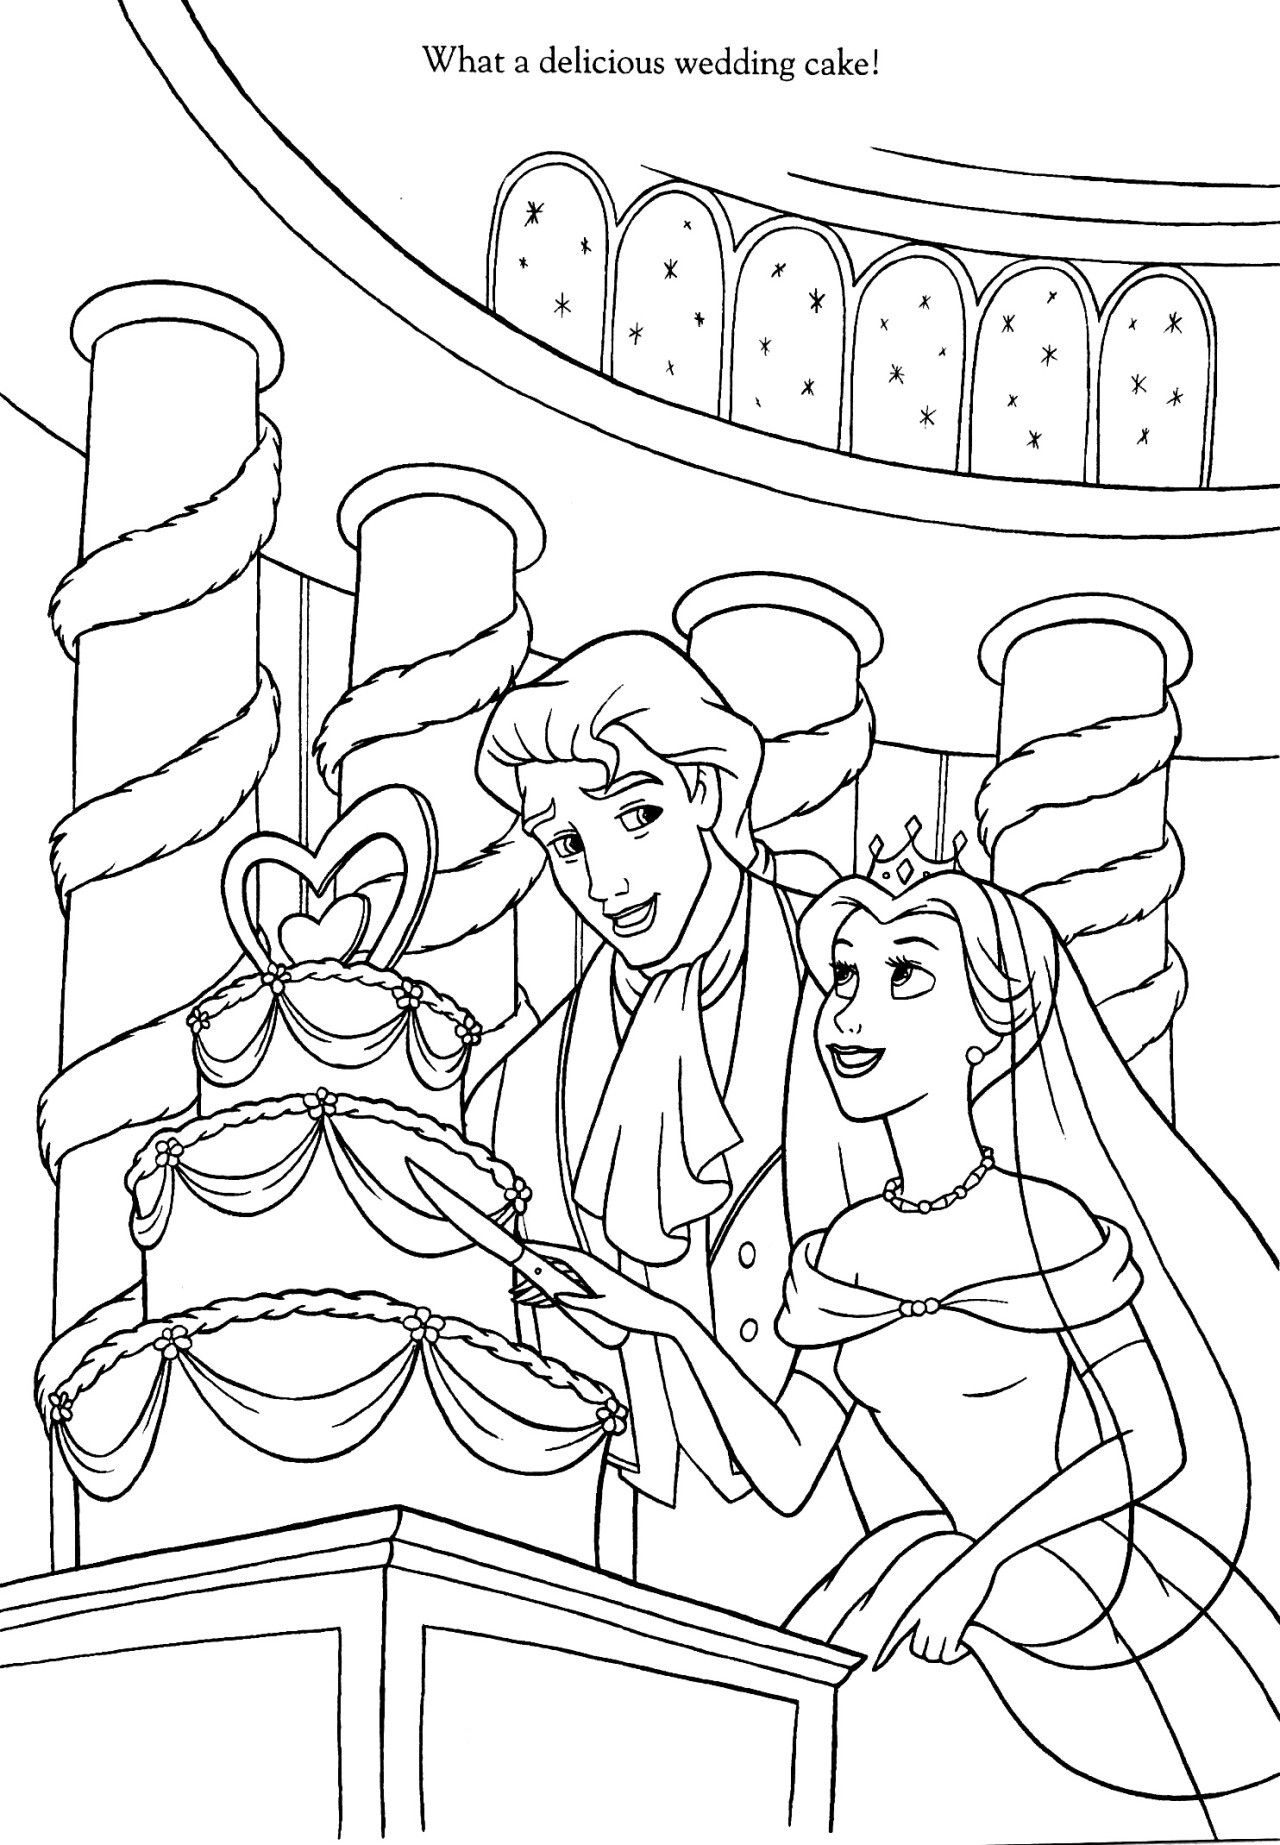 Free Wedding Color Sheet For Kids Wedding Coloring Pages